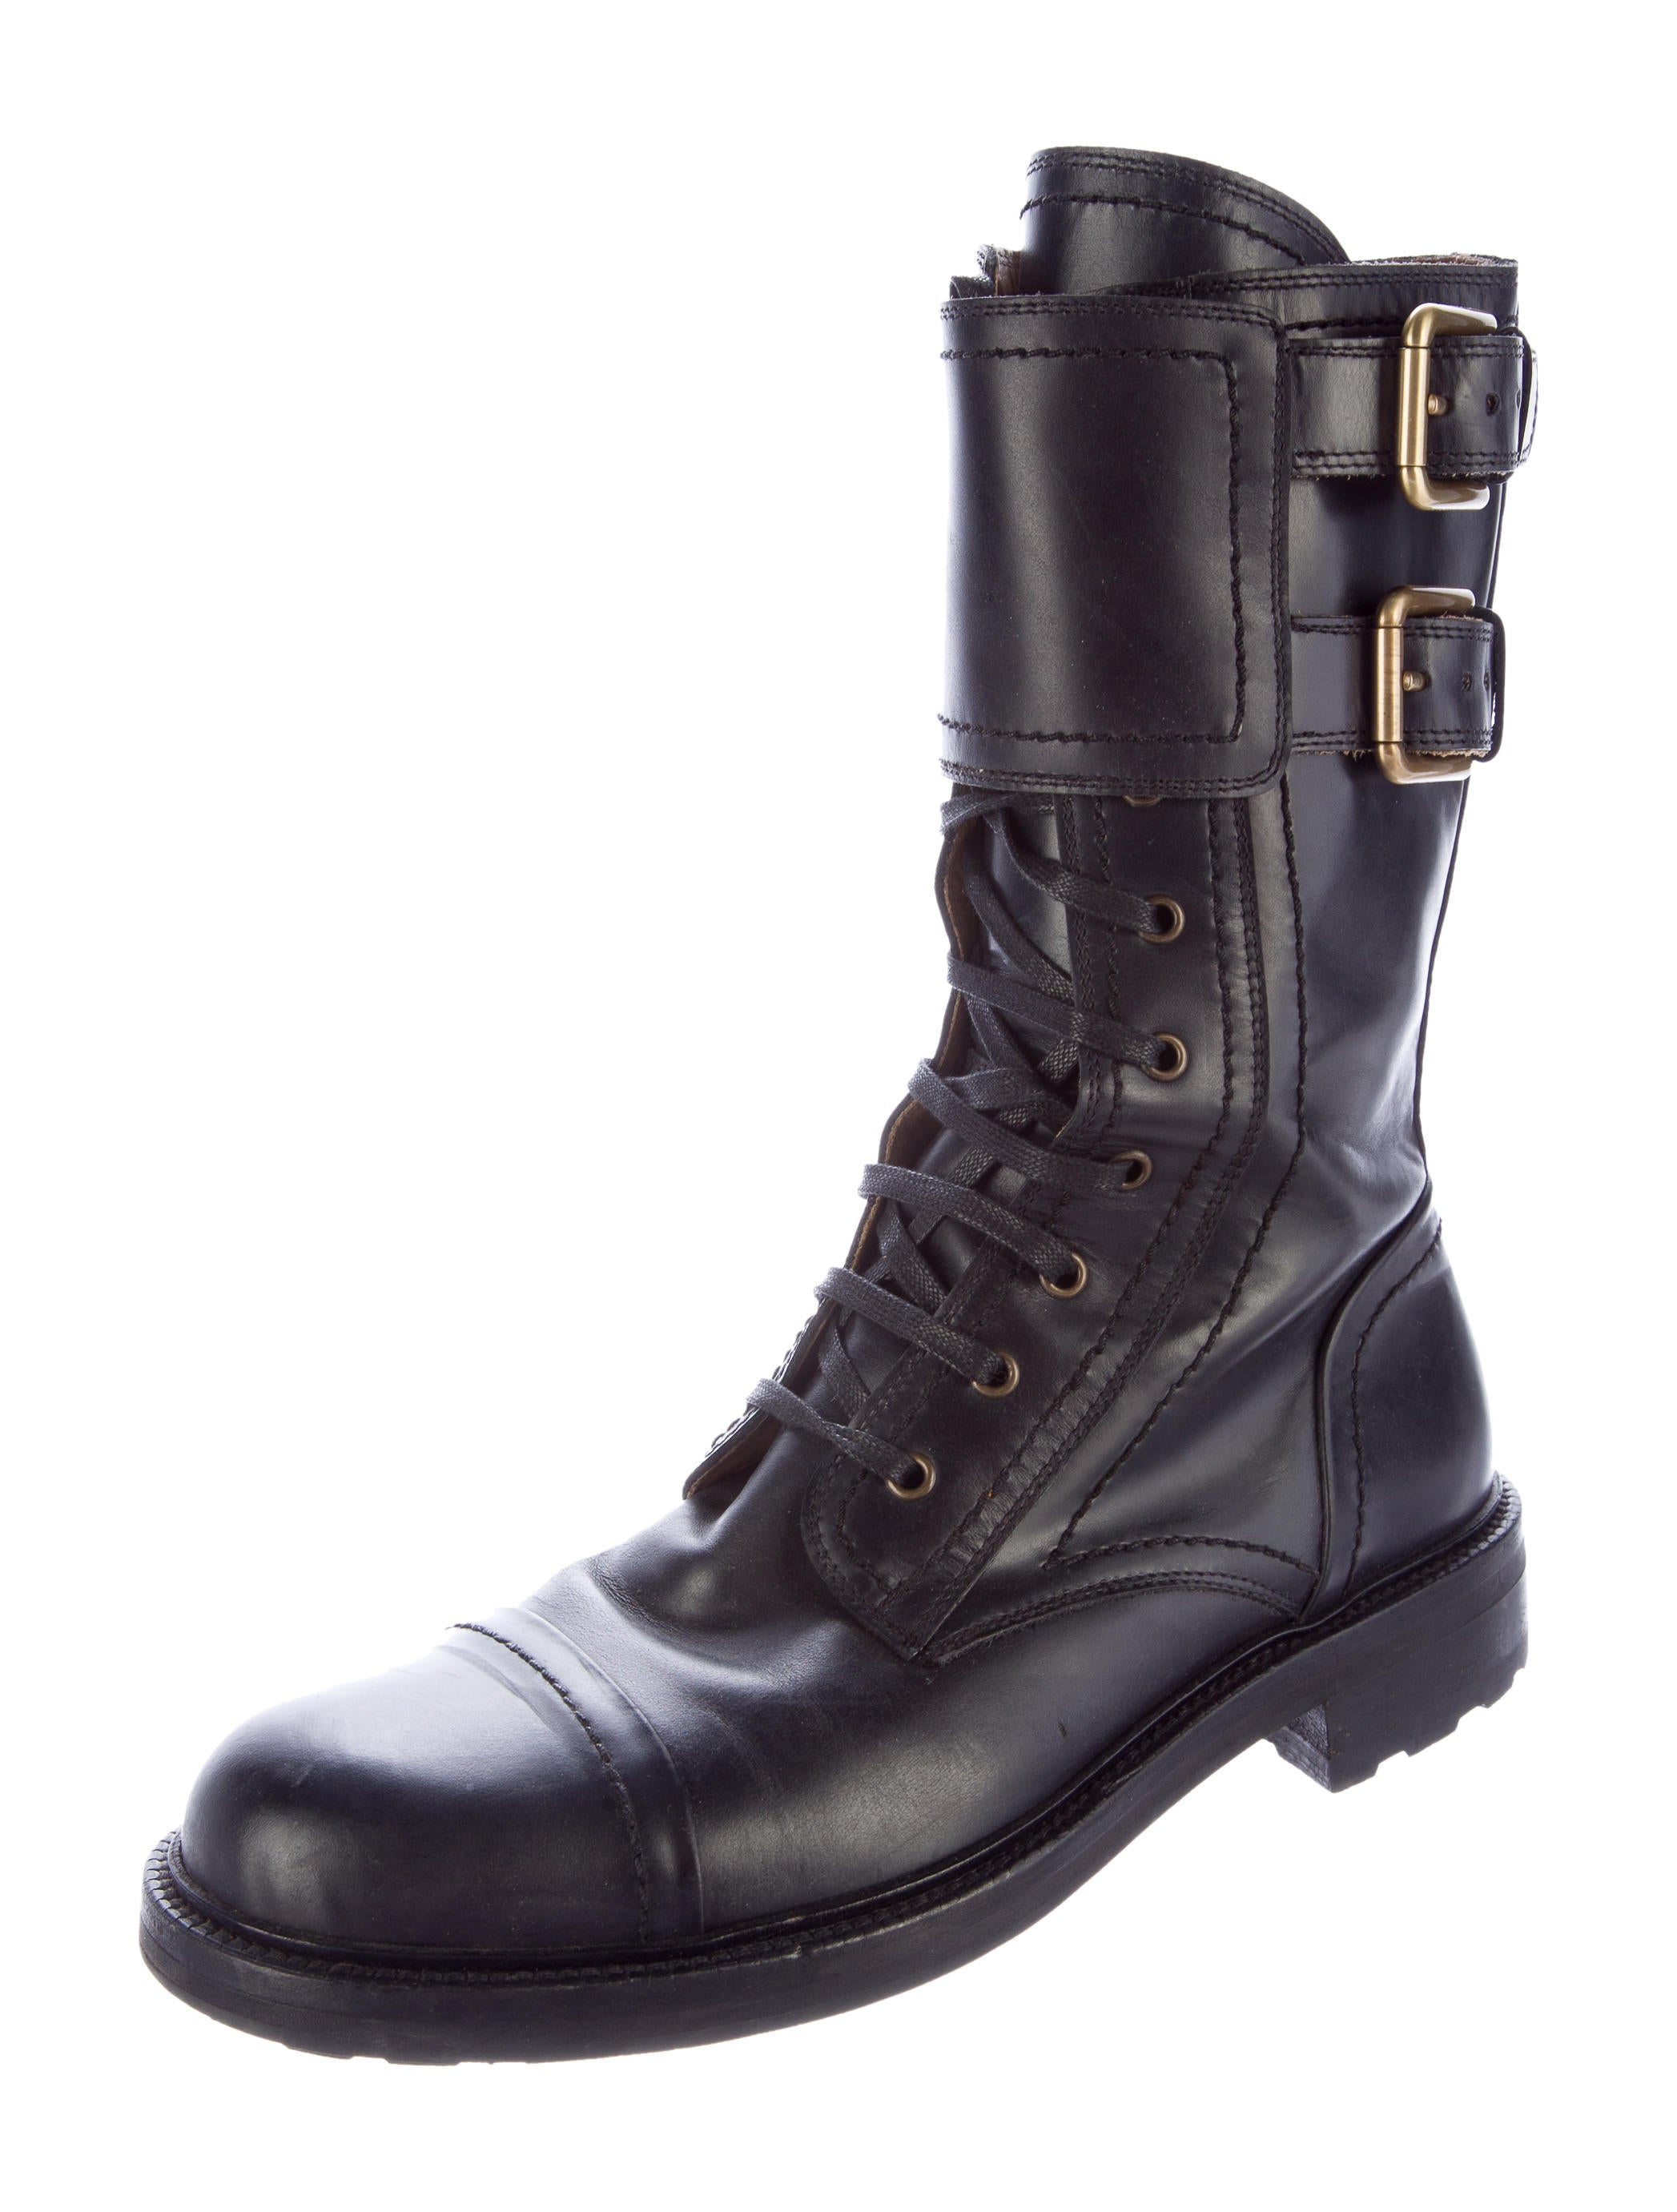 dolce gabbana leather combat boots shoes dag75285